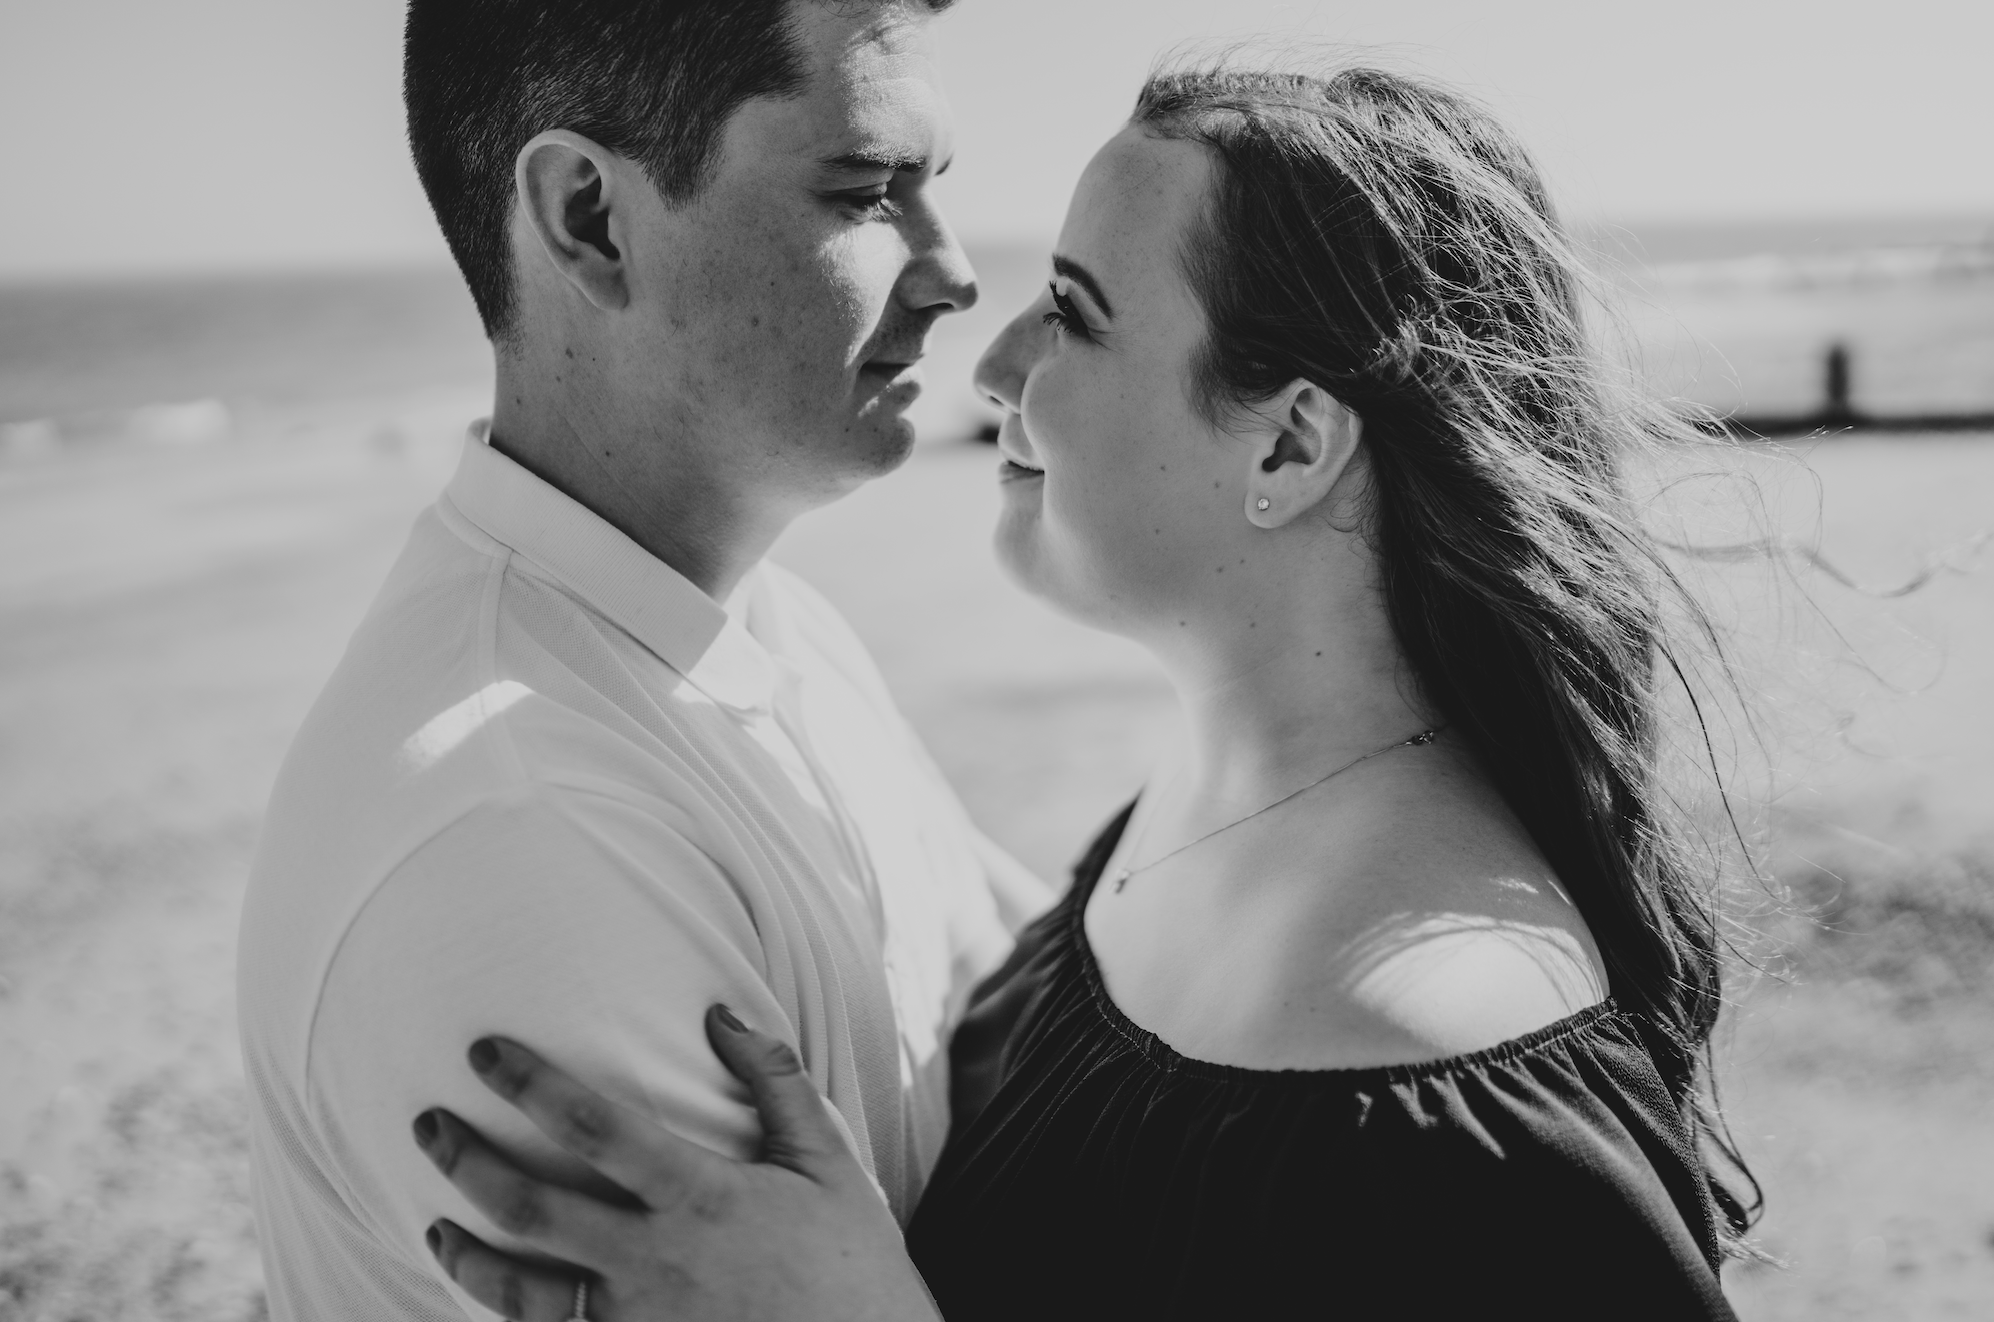 steph + peter - I have followed and admired Grace's style of work for quite a while and longed to have some photos taken by her to celebrate mine and my fiancé's engagement. I couldn't believe my luck when I won a competition on Instagram, that Grace was running, for a complimentary lifestyle session.Throughout the whole process Grace has been so friendly, approachable, easygoing, dedicated, professional and just so lovely.Grace made both my partner and I feel so at ease (we were both nervous beforehand) and it was like spending time with a friend during our session, that's how comfortable we felt! The photos that Grace has captured for us I am so grateful for, they are so lovely and we love them.I cannot recommend Grace enough, she has a real talent and eye for photography, which as result creates beautiful photos and memories which I will always treasure!Thank you so much Grace, I can't wait to have more photos taken by you in the future!